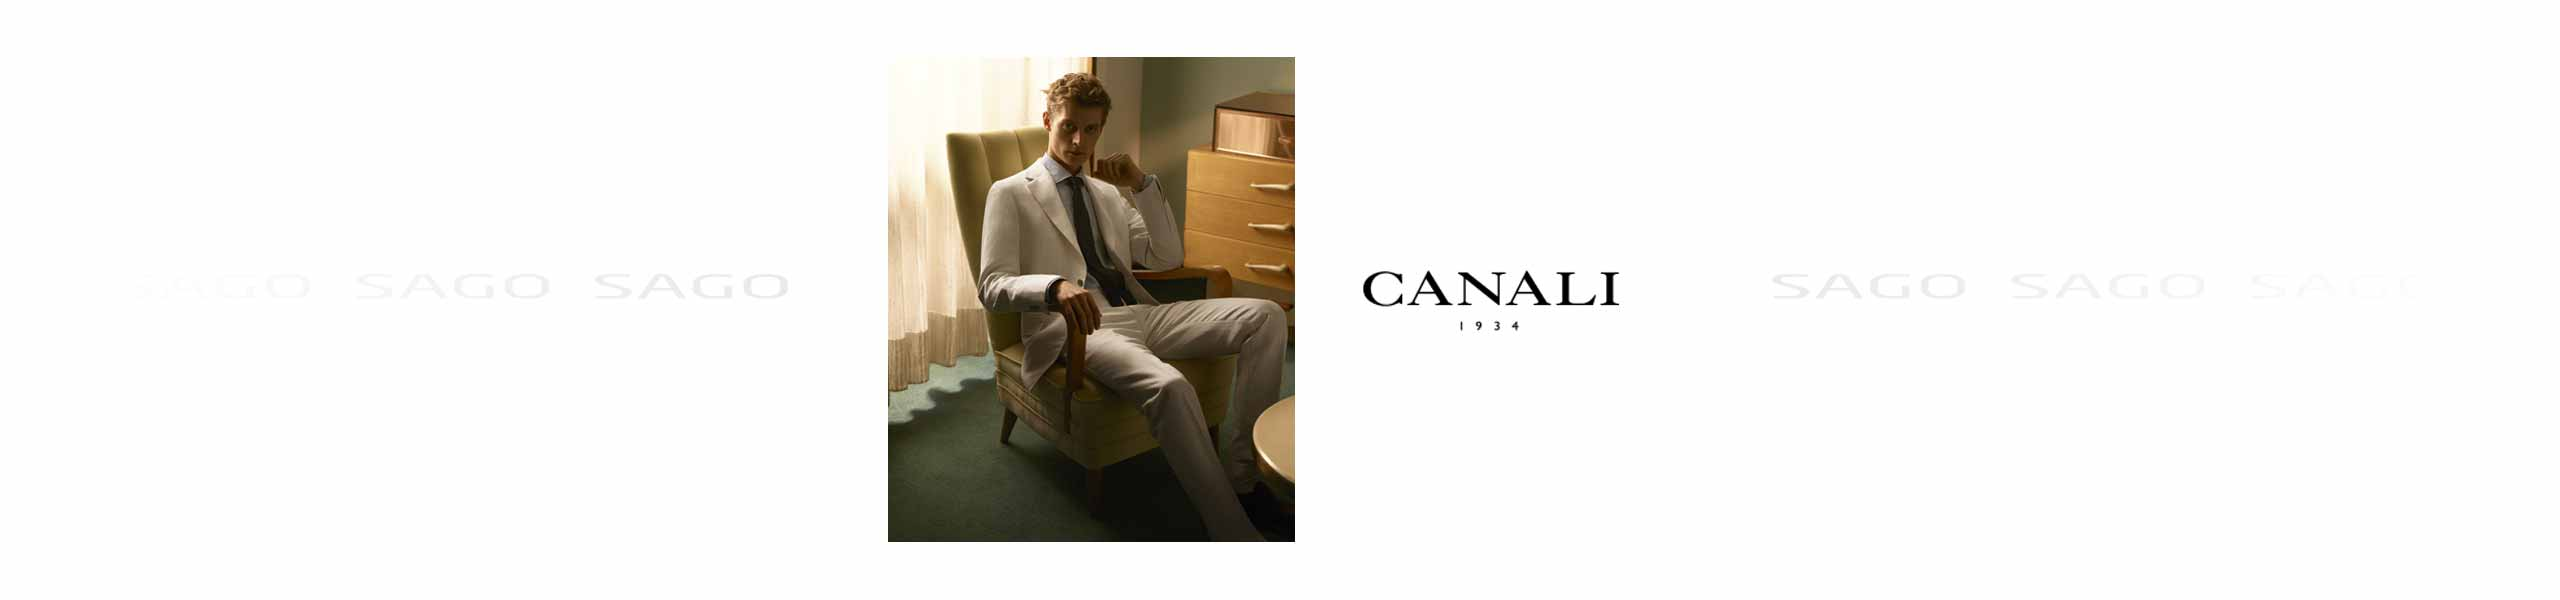 2019-canali-wide-03